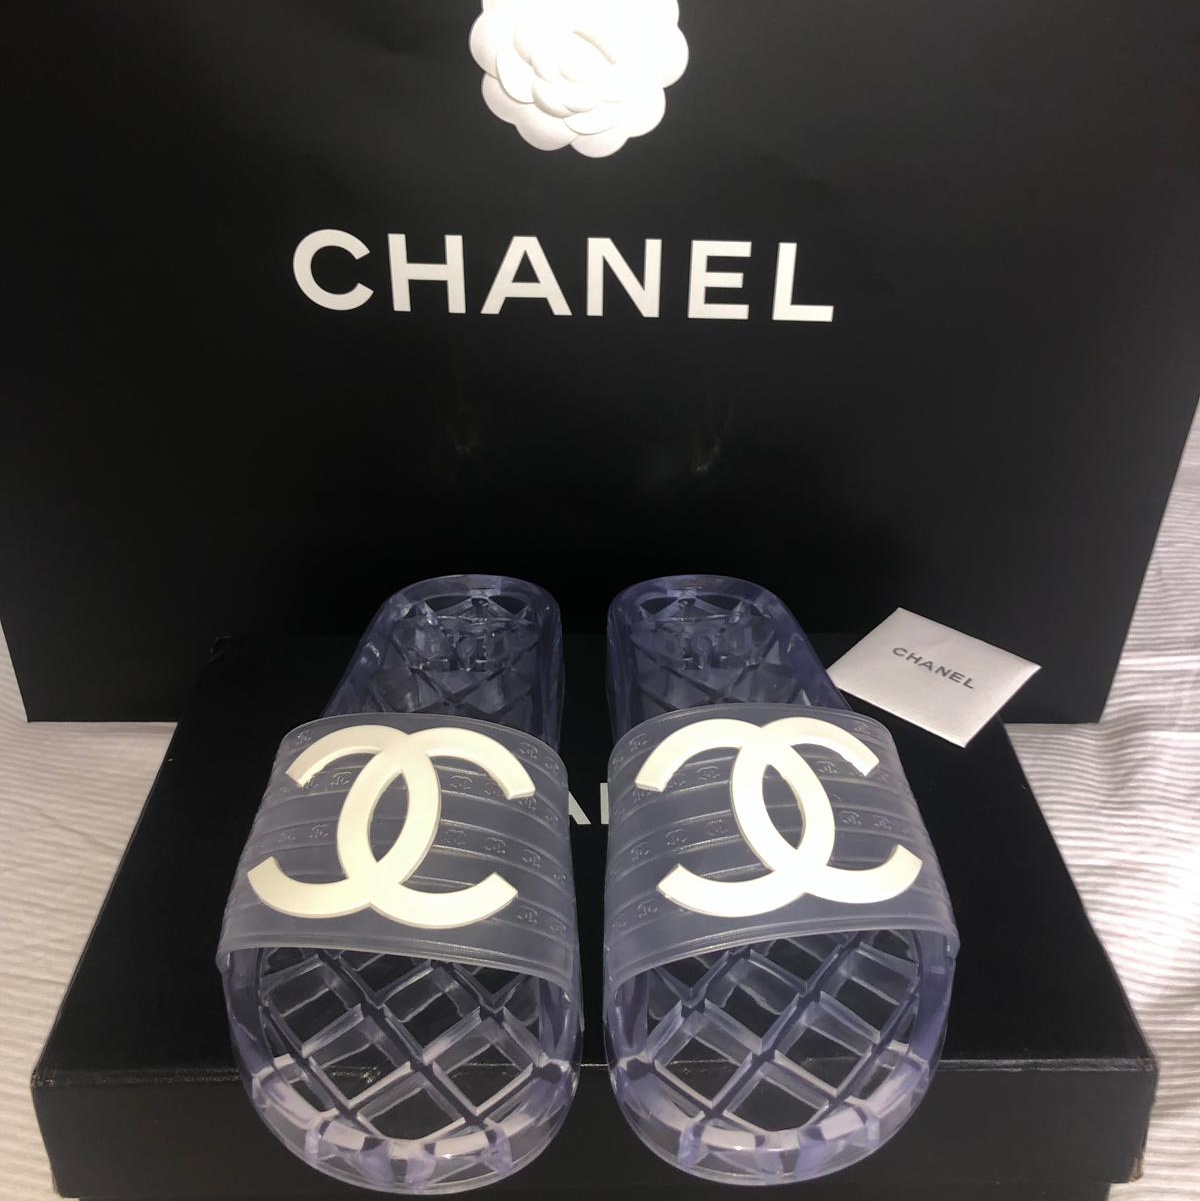 Chanel clear jelly slides size 38 Chanel Jelly    - Depop